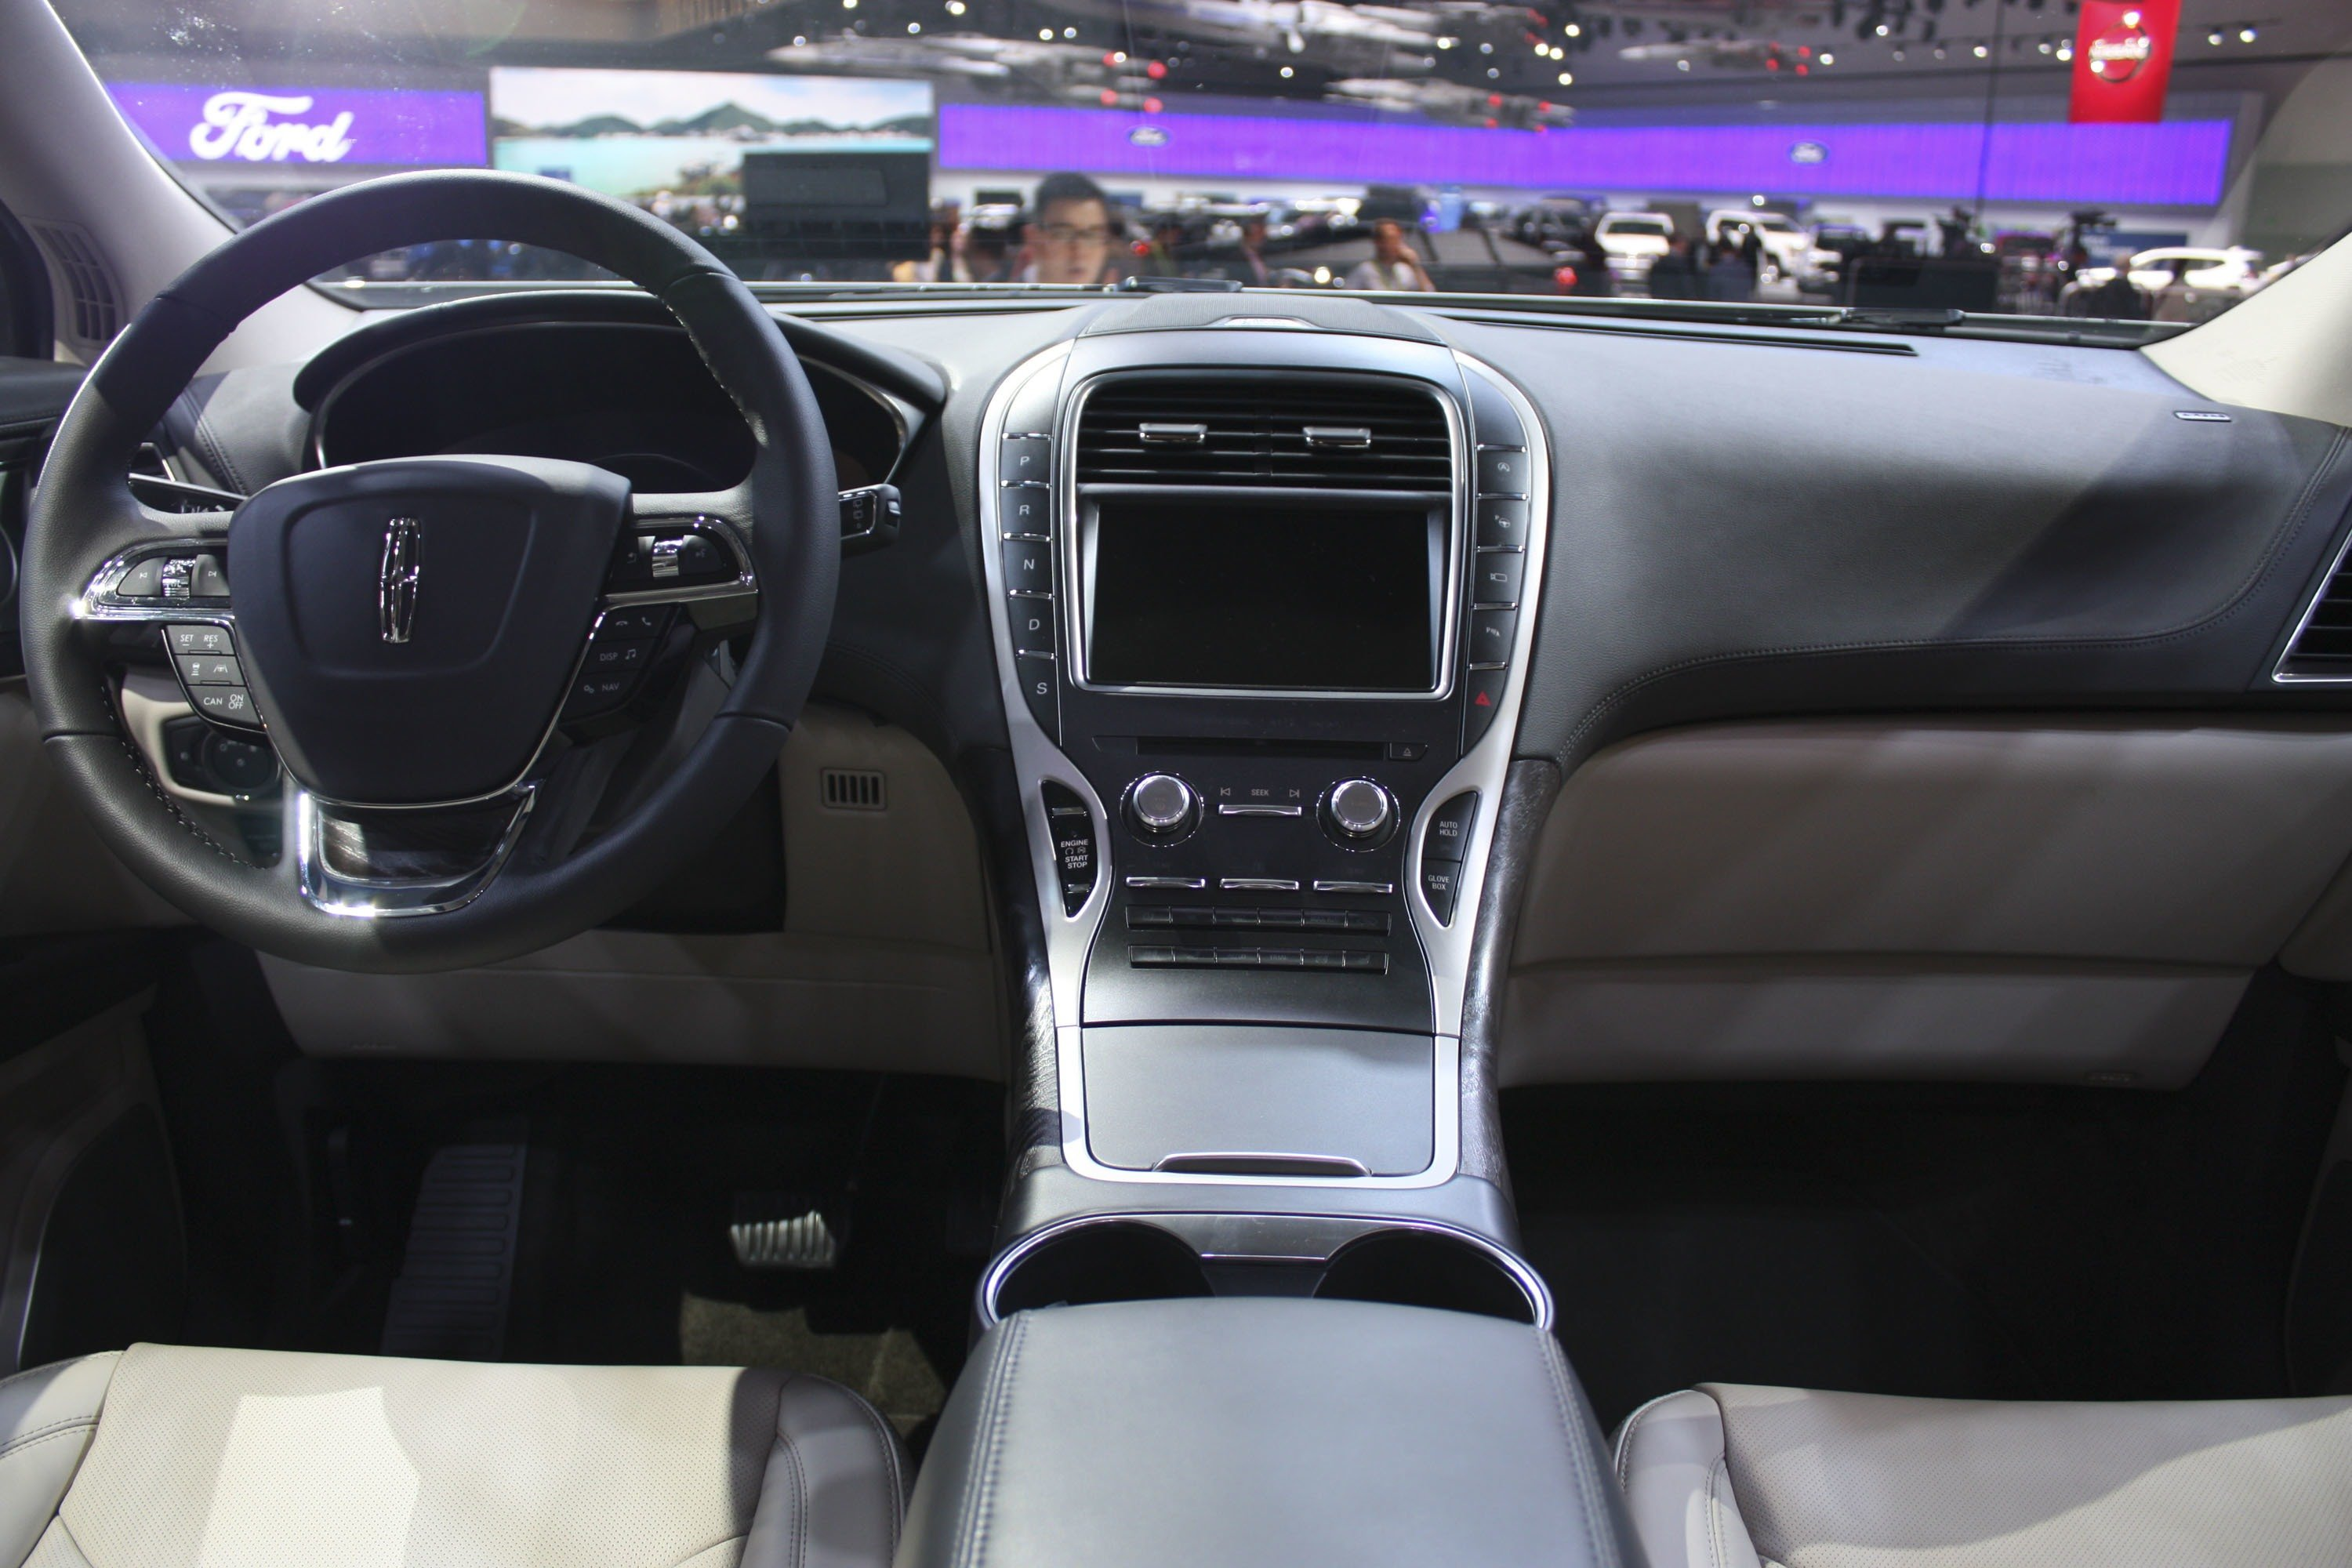 New driver assistance systems